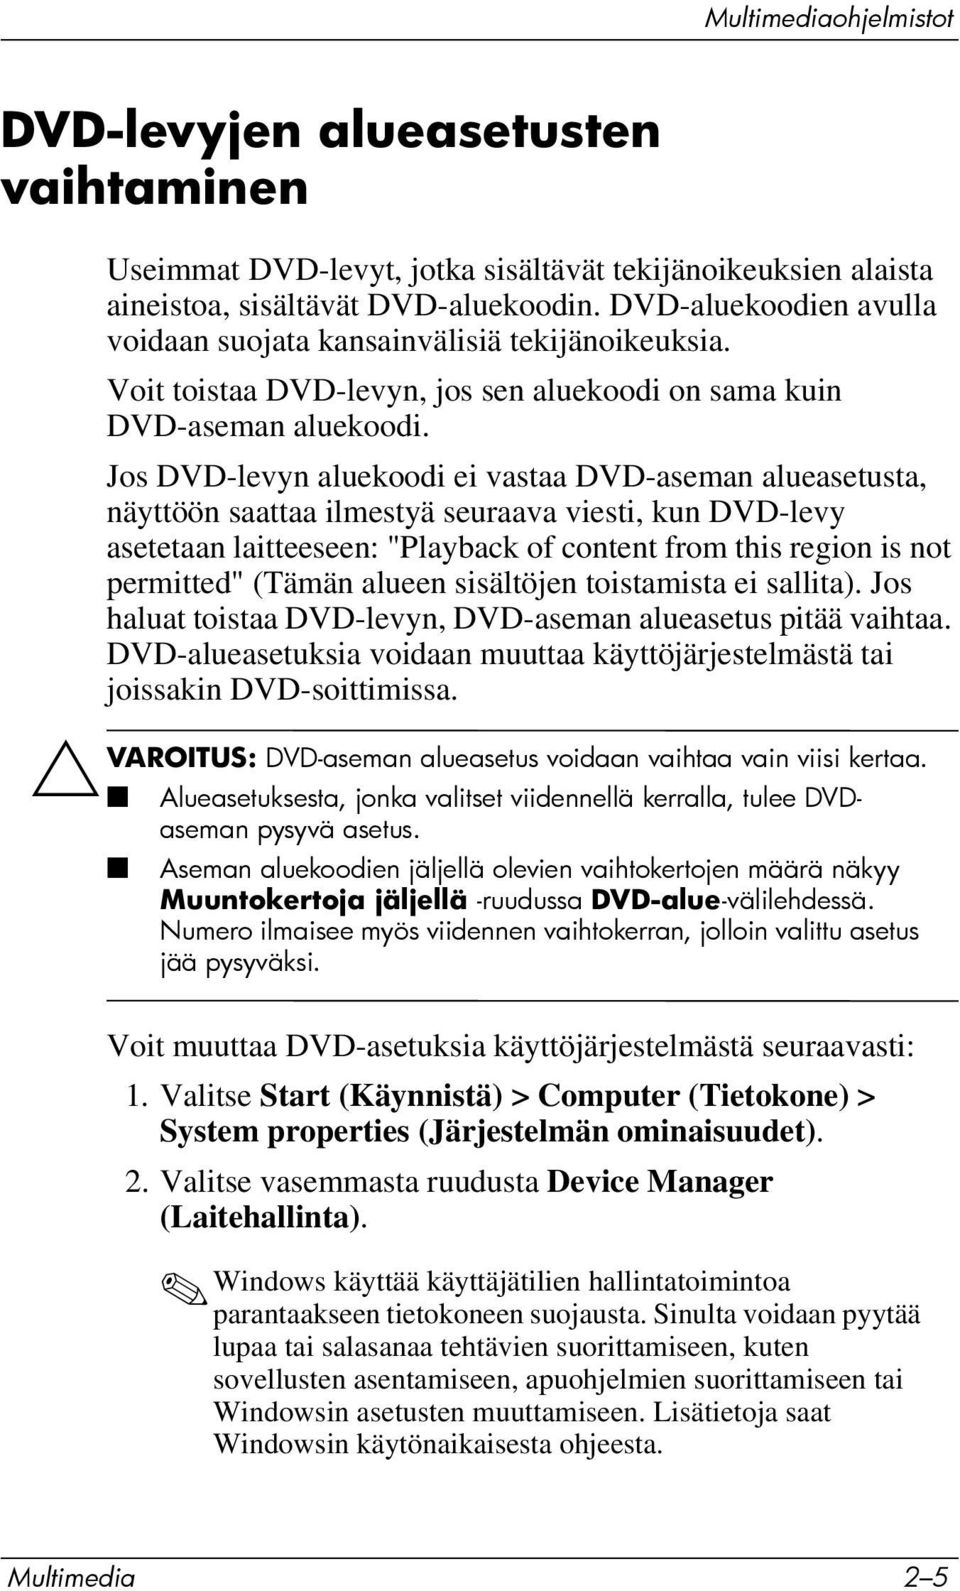 "Jos DVD-levyn aluekoodi ei vastaa DVD-aseman alueasetusta, näyttöön saattaa ilmestyä seuraava viesti, kun DVD-levy asetetaan laitteeseen: ""Playback of content from this region is not permitted"""